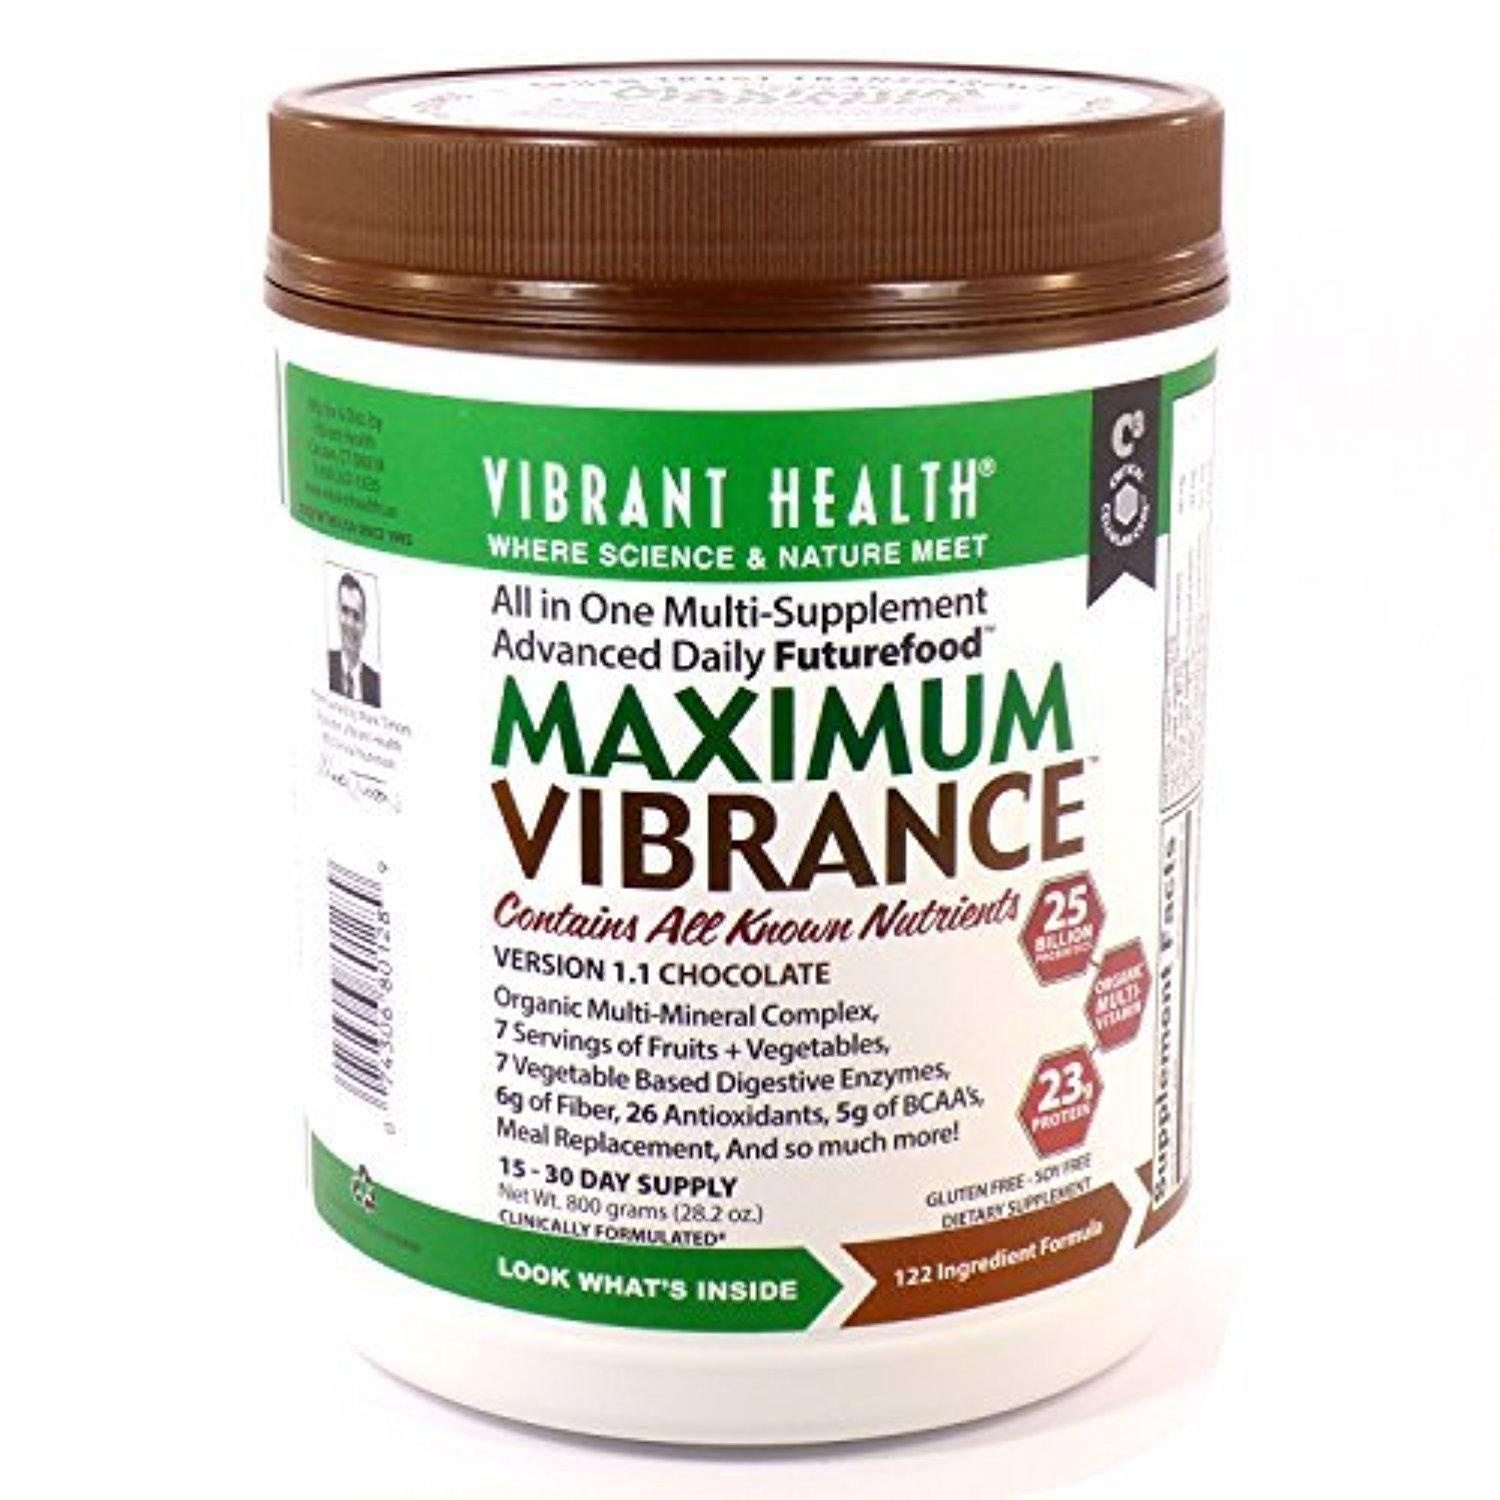 Bundle - 2 Items:1 Maximum Vibrance By Vibrant Health - 800 Grams and 1 VDC Shaker Cup by Vibrant Health